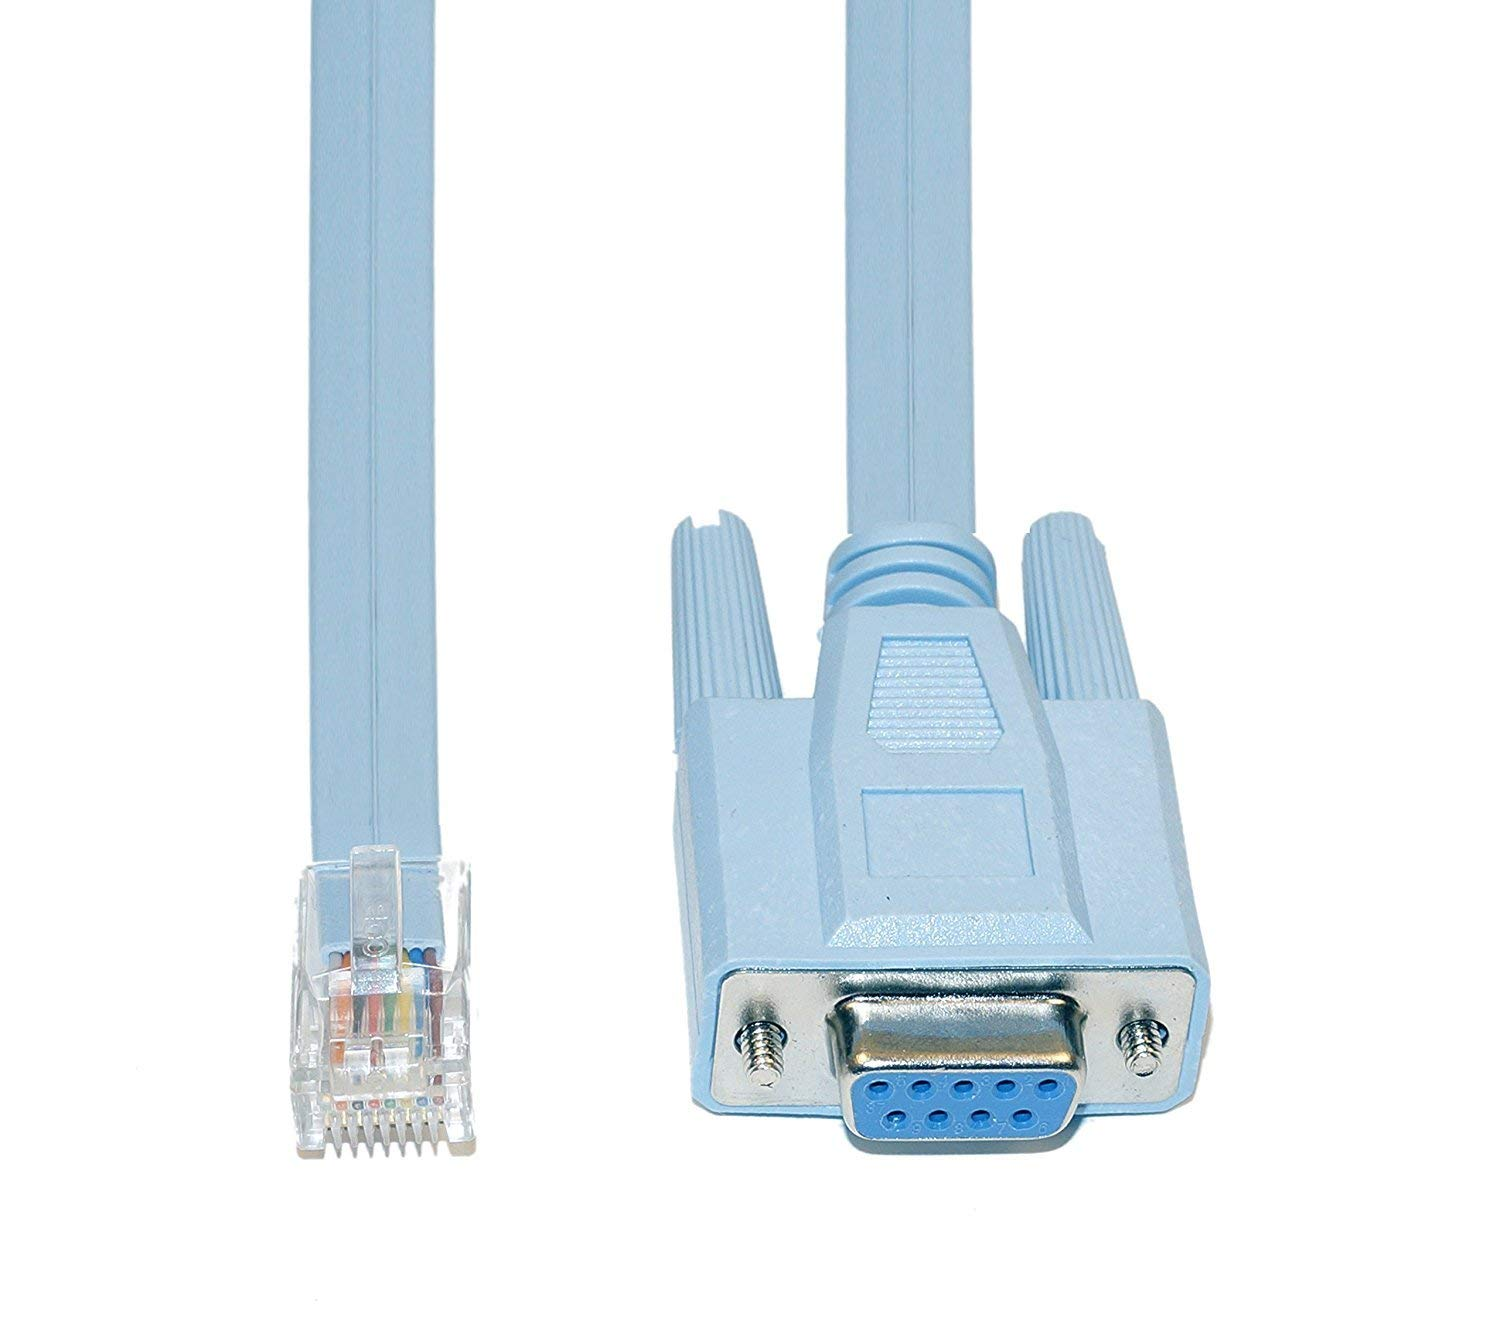 hight resolution of get quotations 9 pin db9 serial rs232 port to rj45 cat5 ethernet lan rollover console cable switch